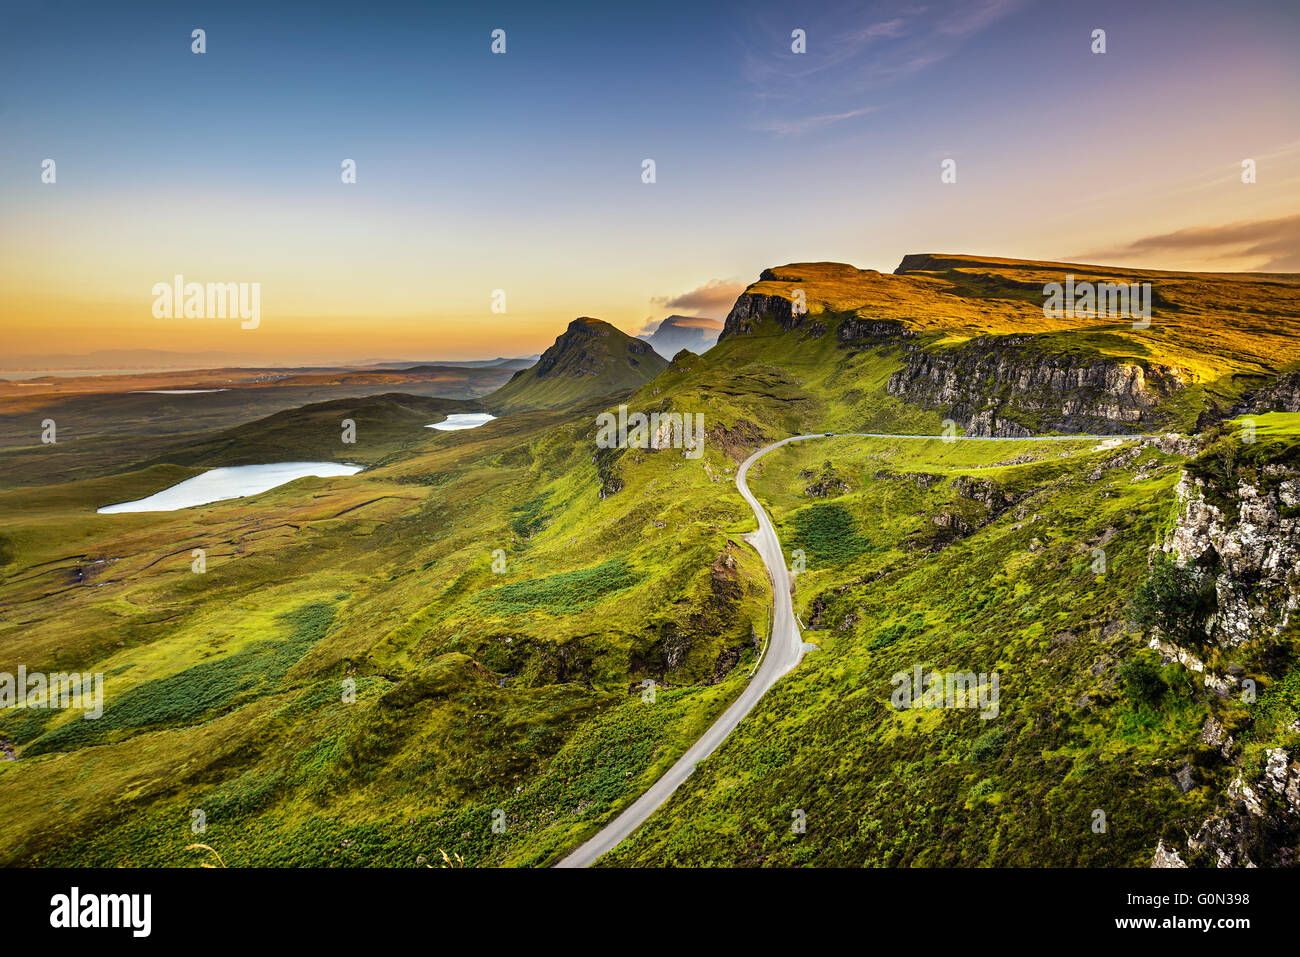 Quiraing mountains sunset at Isle of Skye, Scottish highlands, United Kingdom - Stock Image